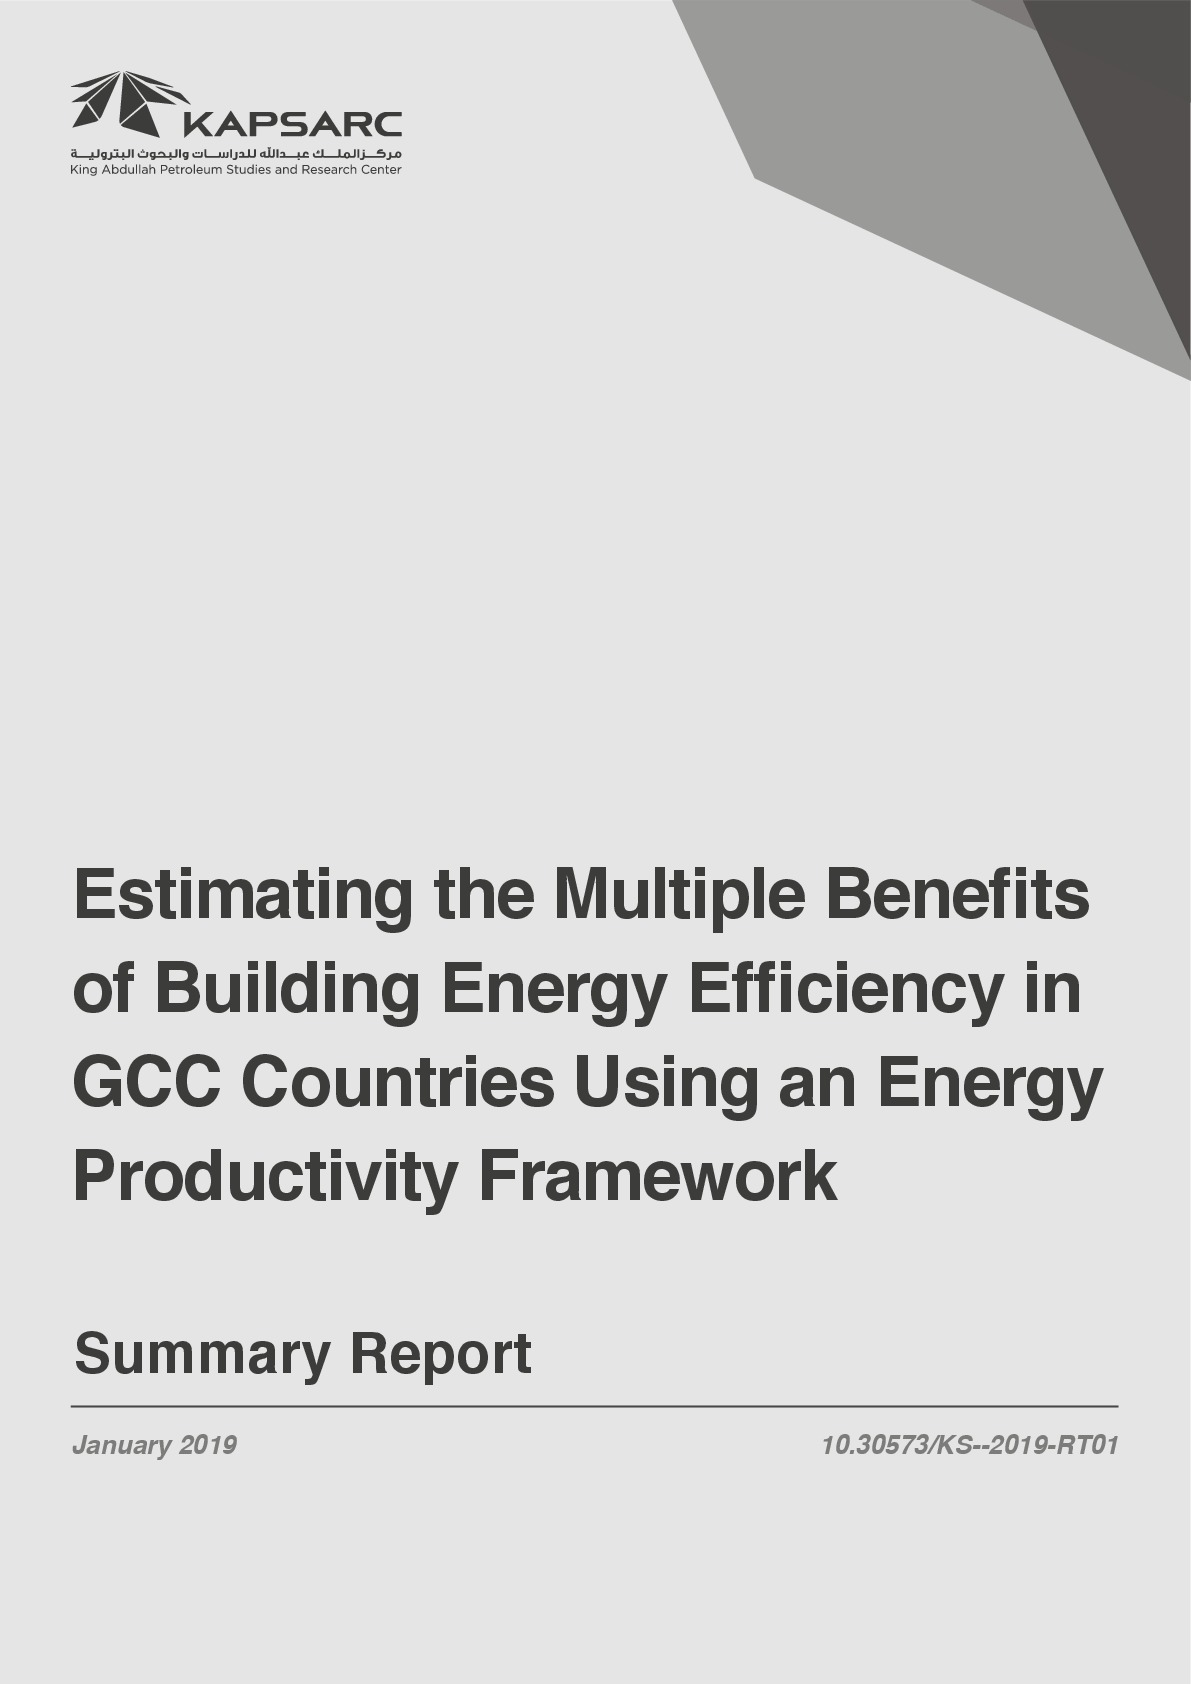 Estimating the Multiple Benefits of Building Energy Efficiency in GCC Countries Using an Energy Productivity Framework